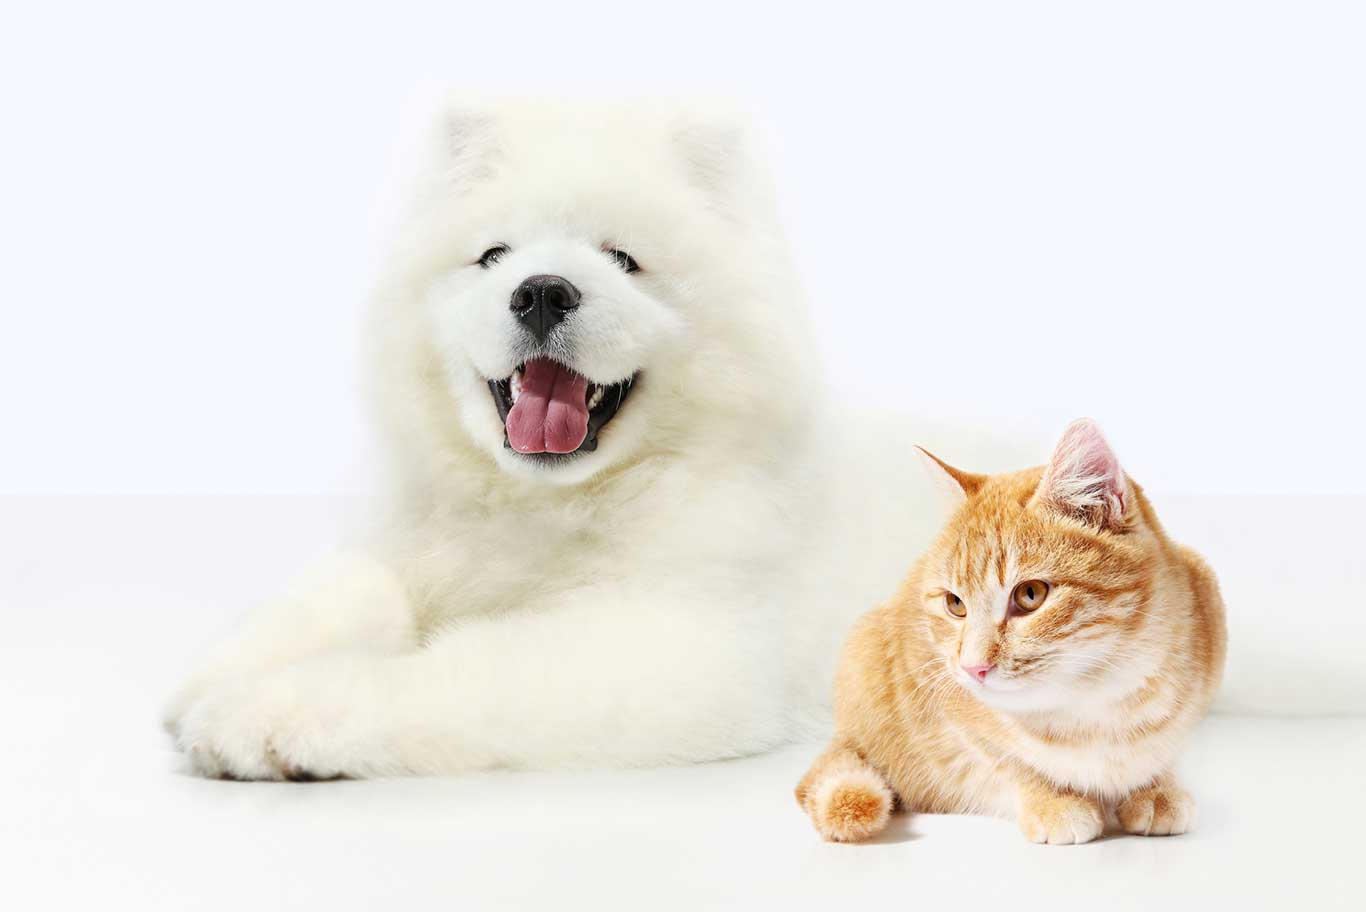 White puffy dog in company of a cat